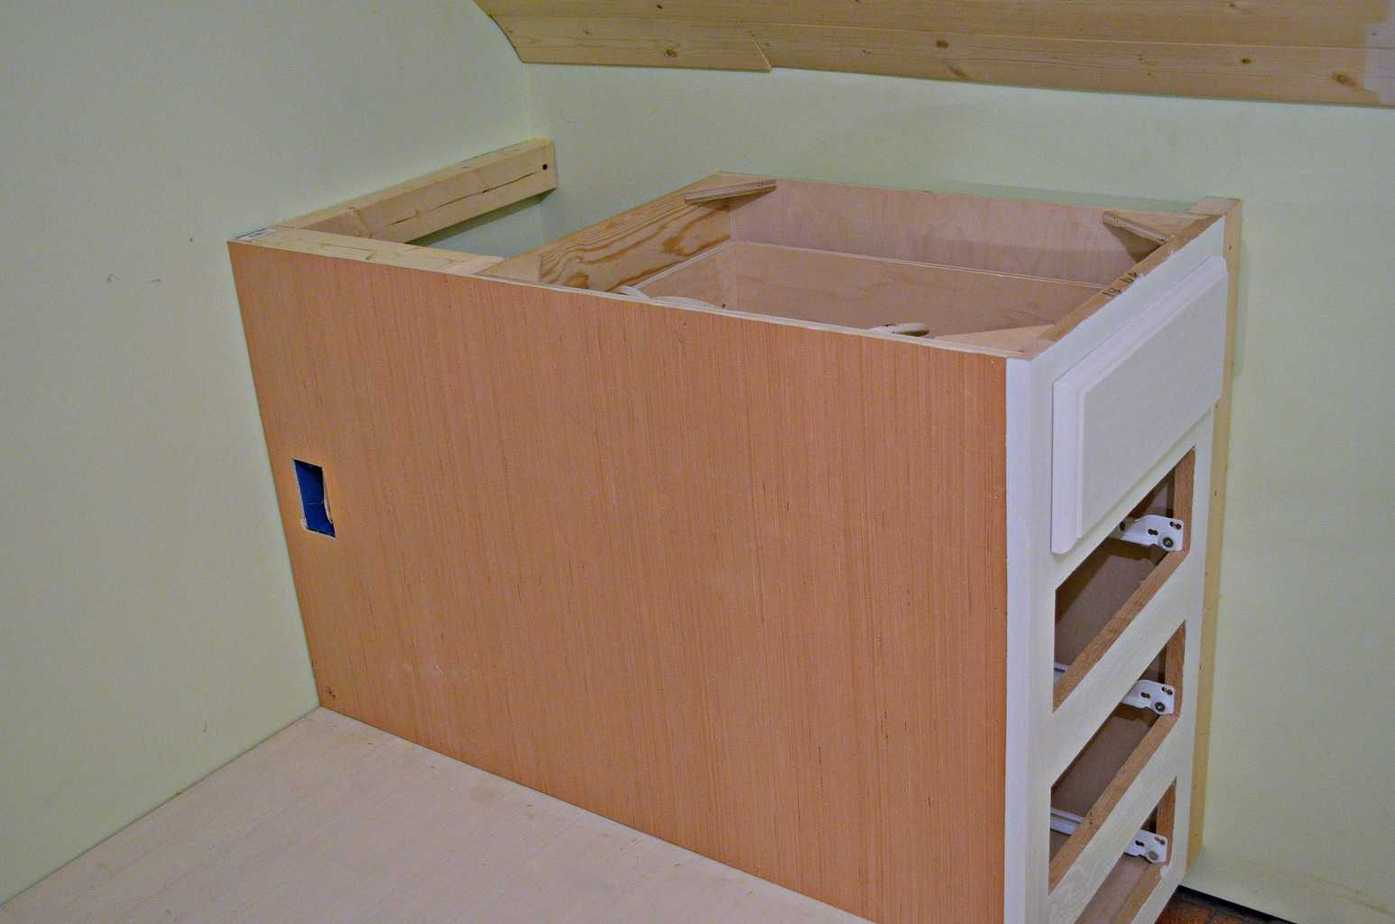 How To Make A Built In Bed Using Kitchen Cabinets A Rustic Planked Wall Simplicity In The South